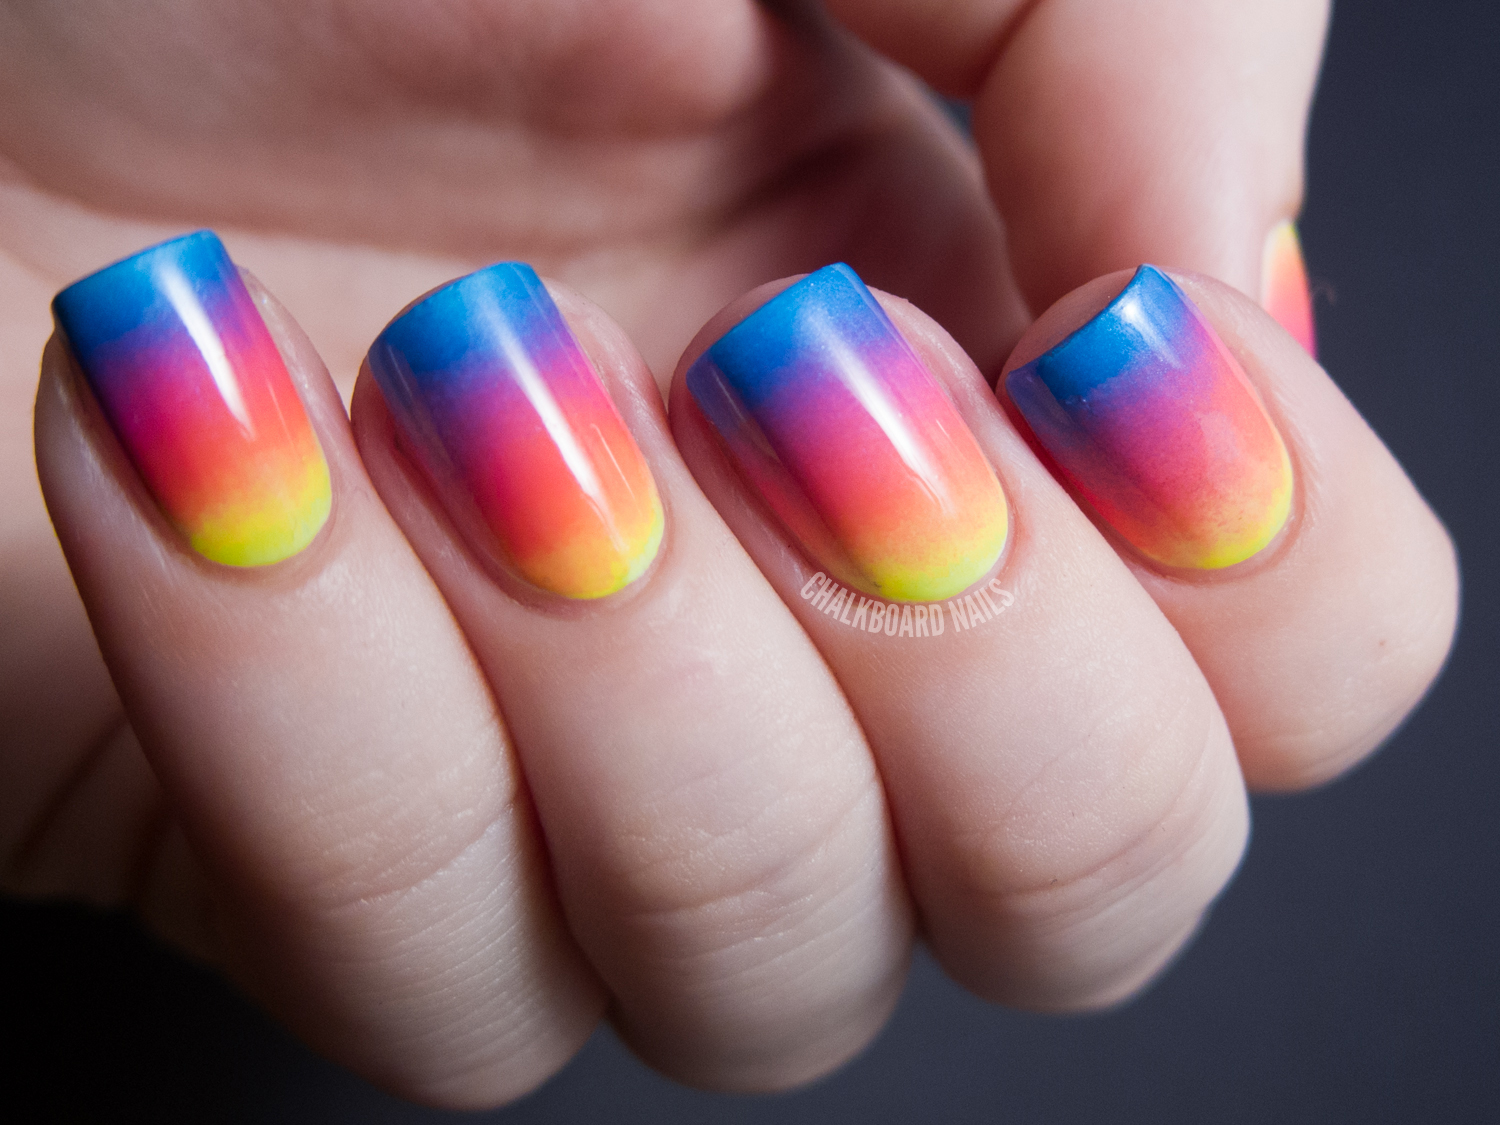 Sunset Gradient Maze Patterned Nails - Sunset Gradient Maze Patterned Nails Chalkboard Nails Nail Art